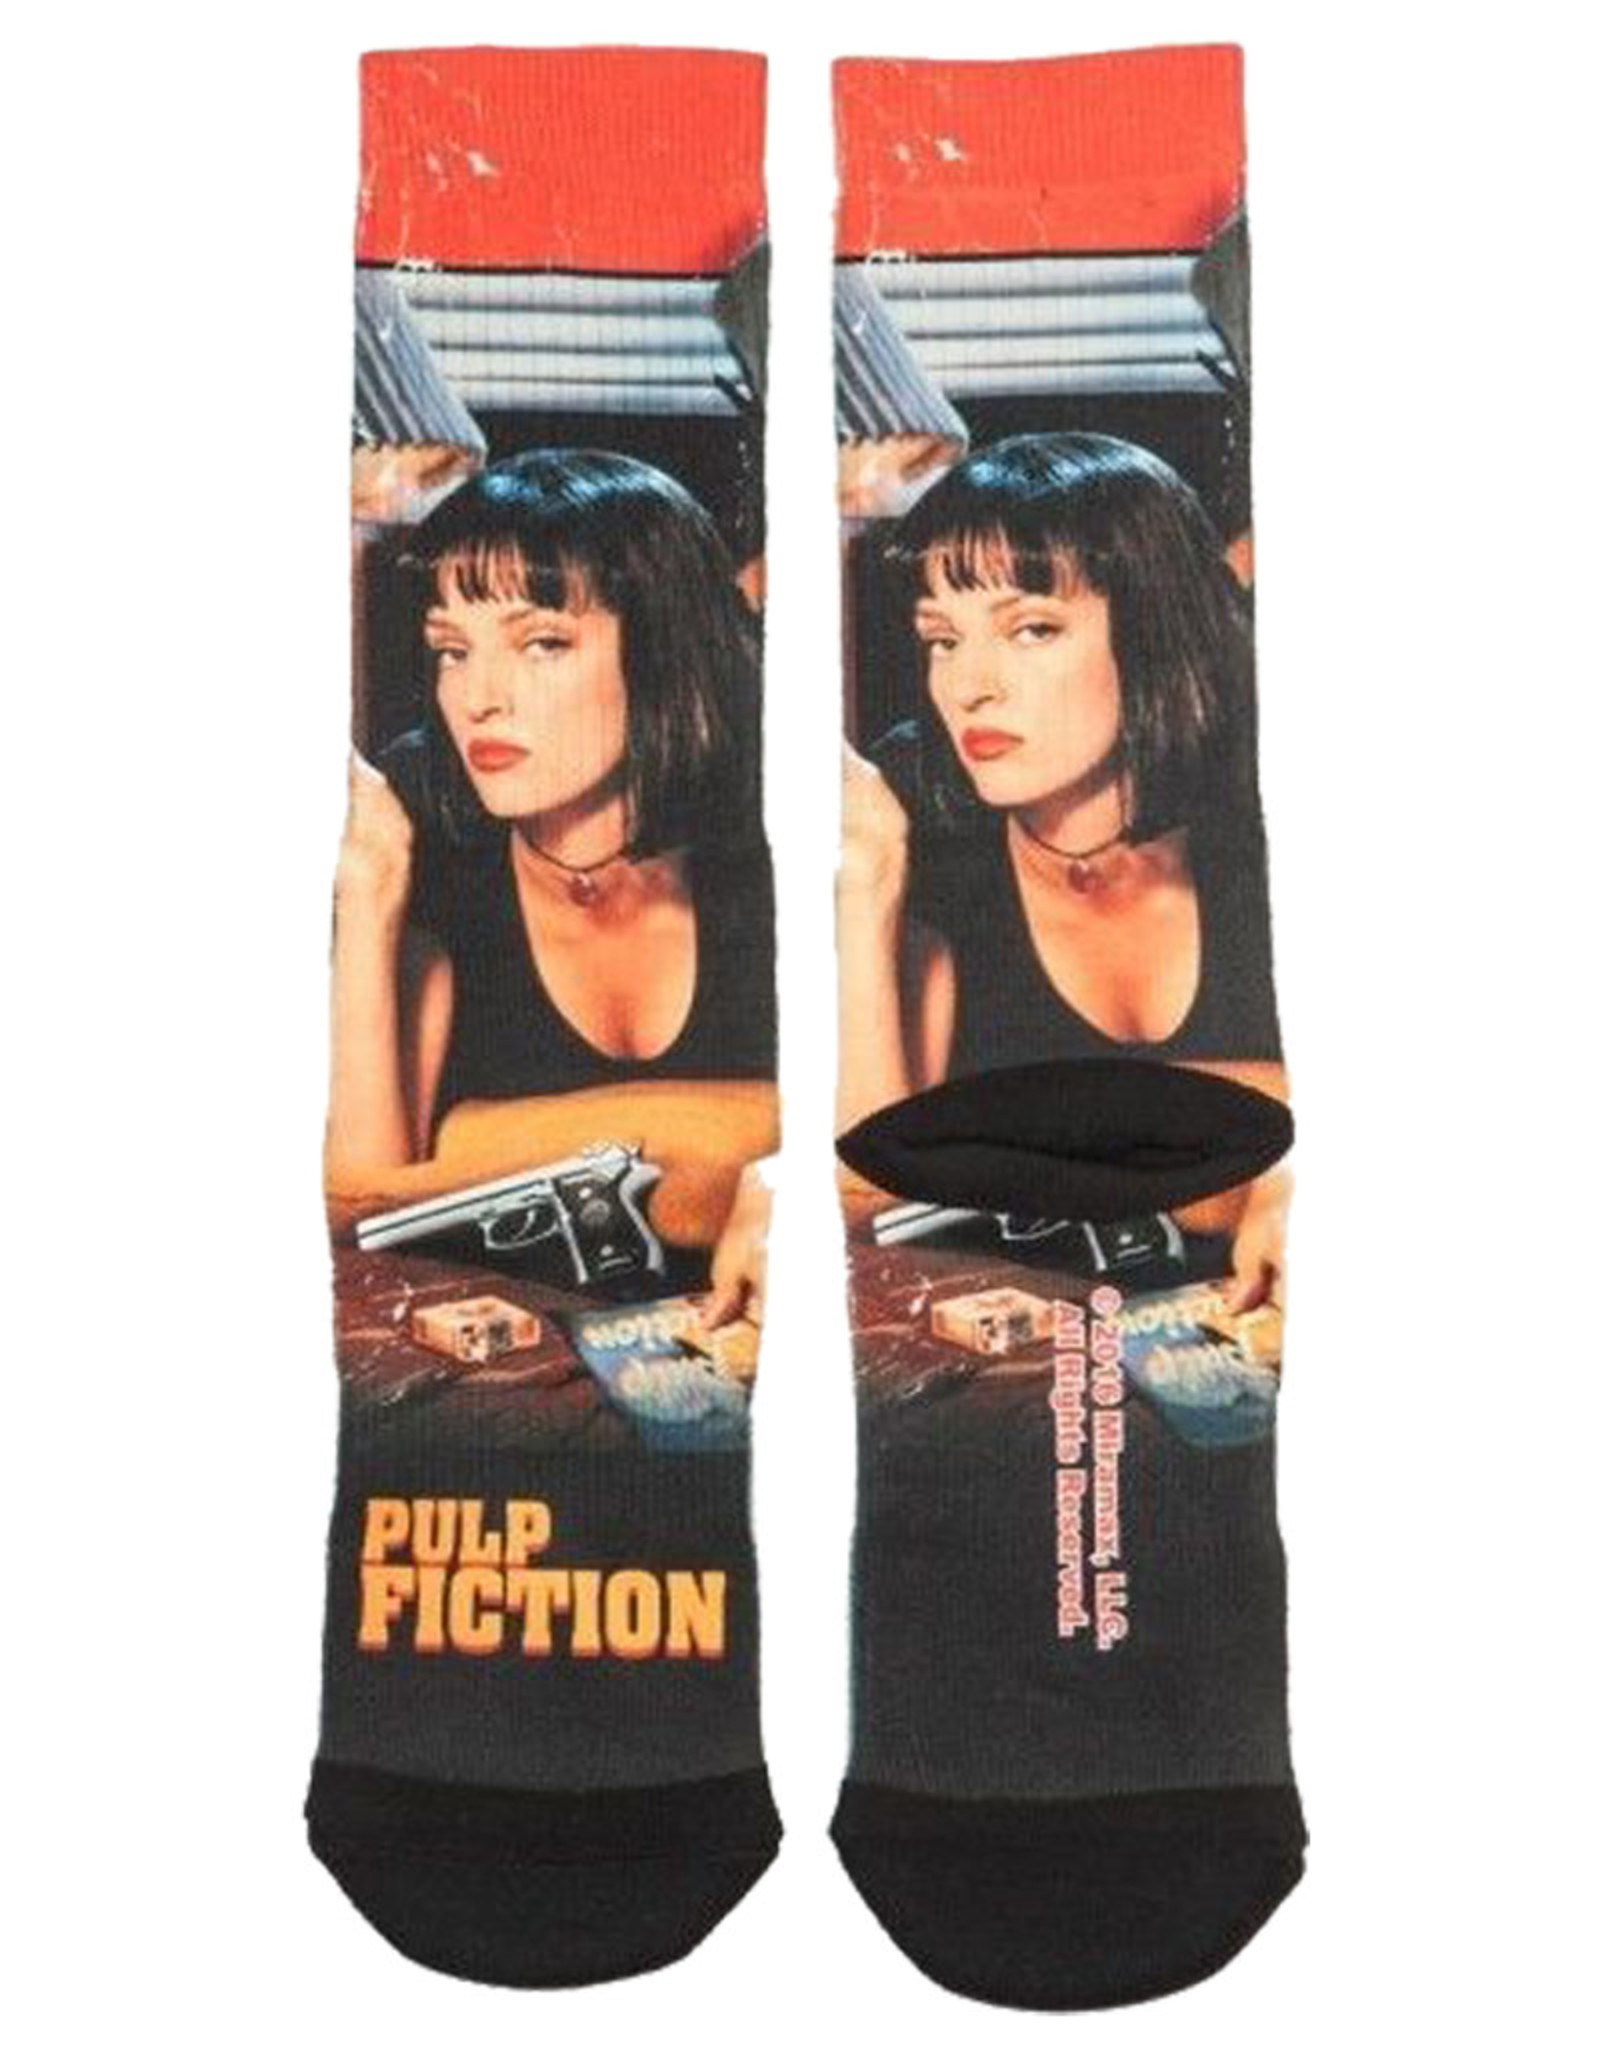 Pulp Fiction ( Socks )